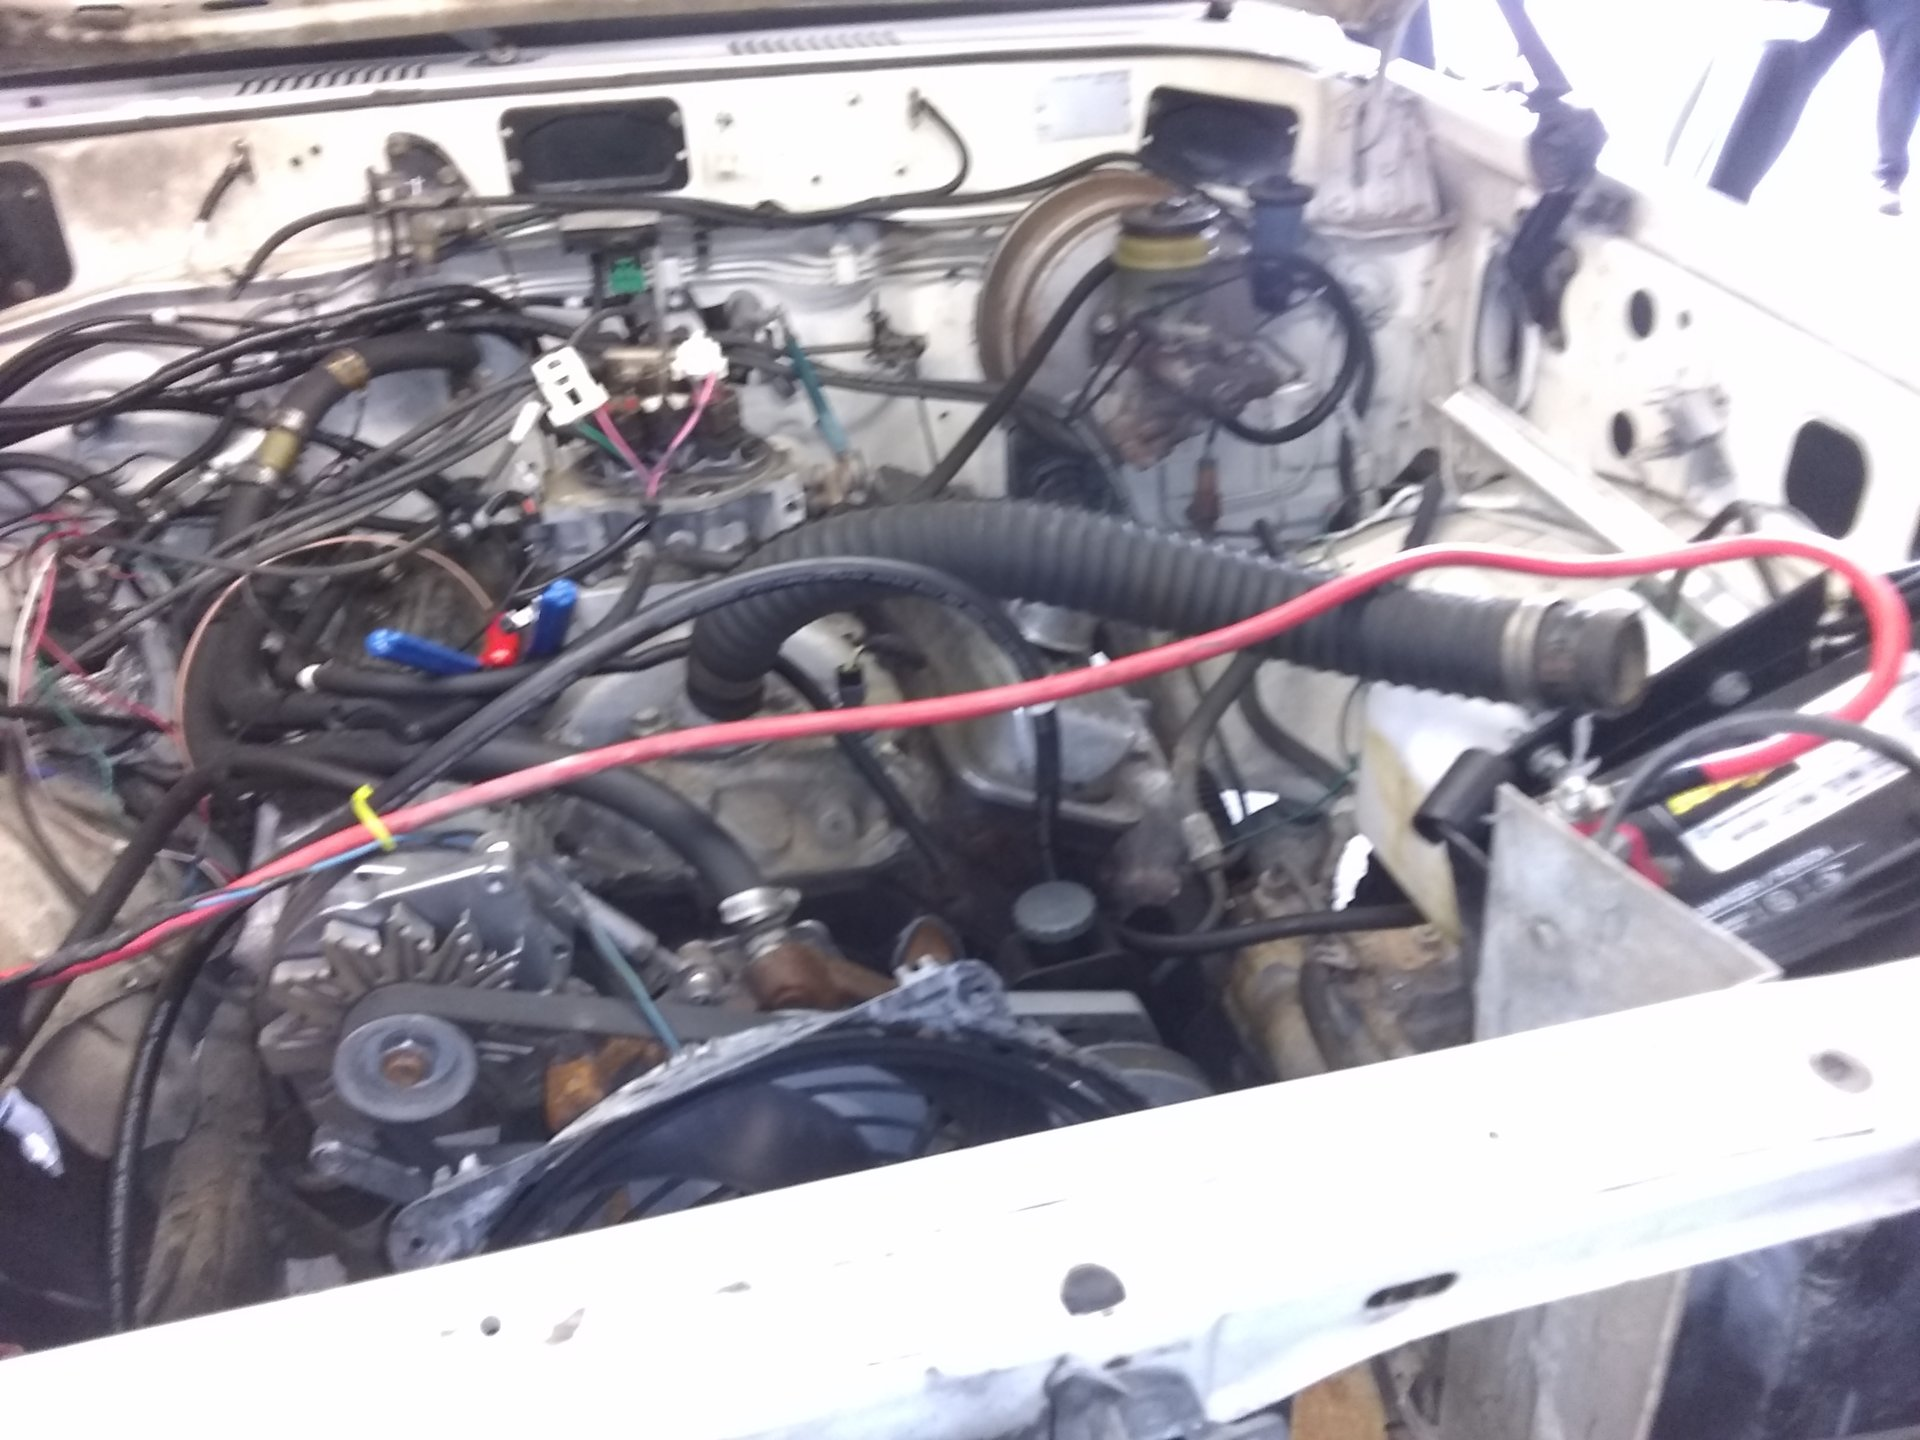 1987 60 getting her tbi wiring harness installed | IH8MUD Forum Tbi Wiring Harness Conversion on 4.3 tbi wiring harness, tbi ignition coil circuit diagram, tbi harness diagram,